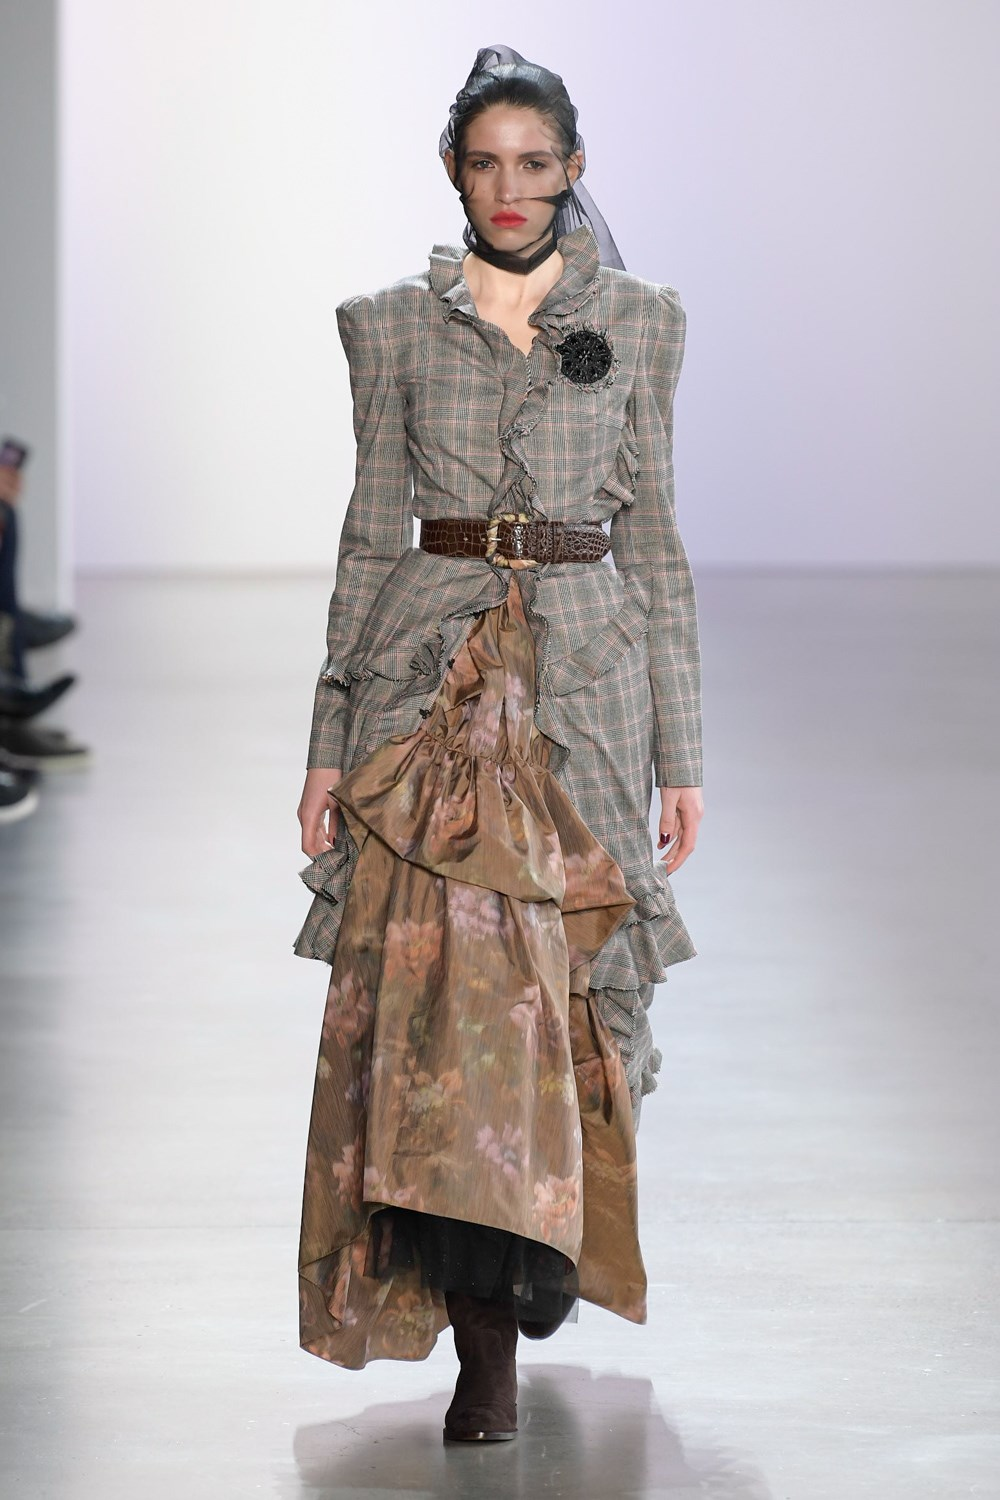 Modern Vintage Fall 2020 Fashion Trend